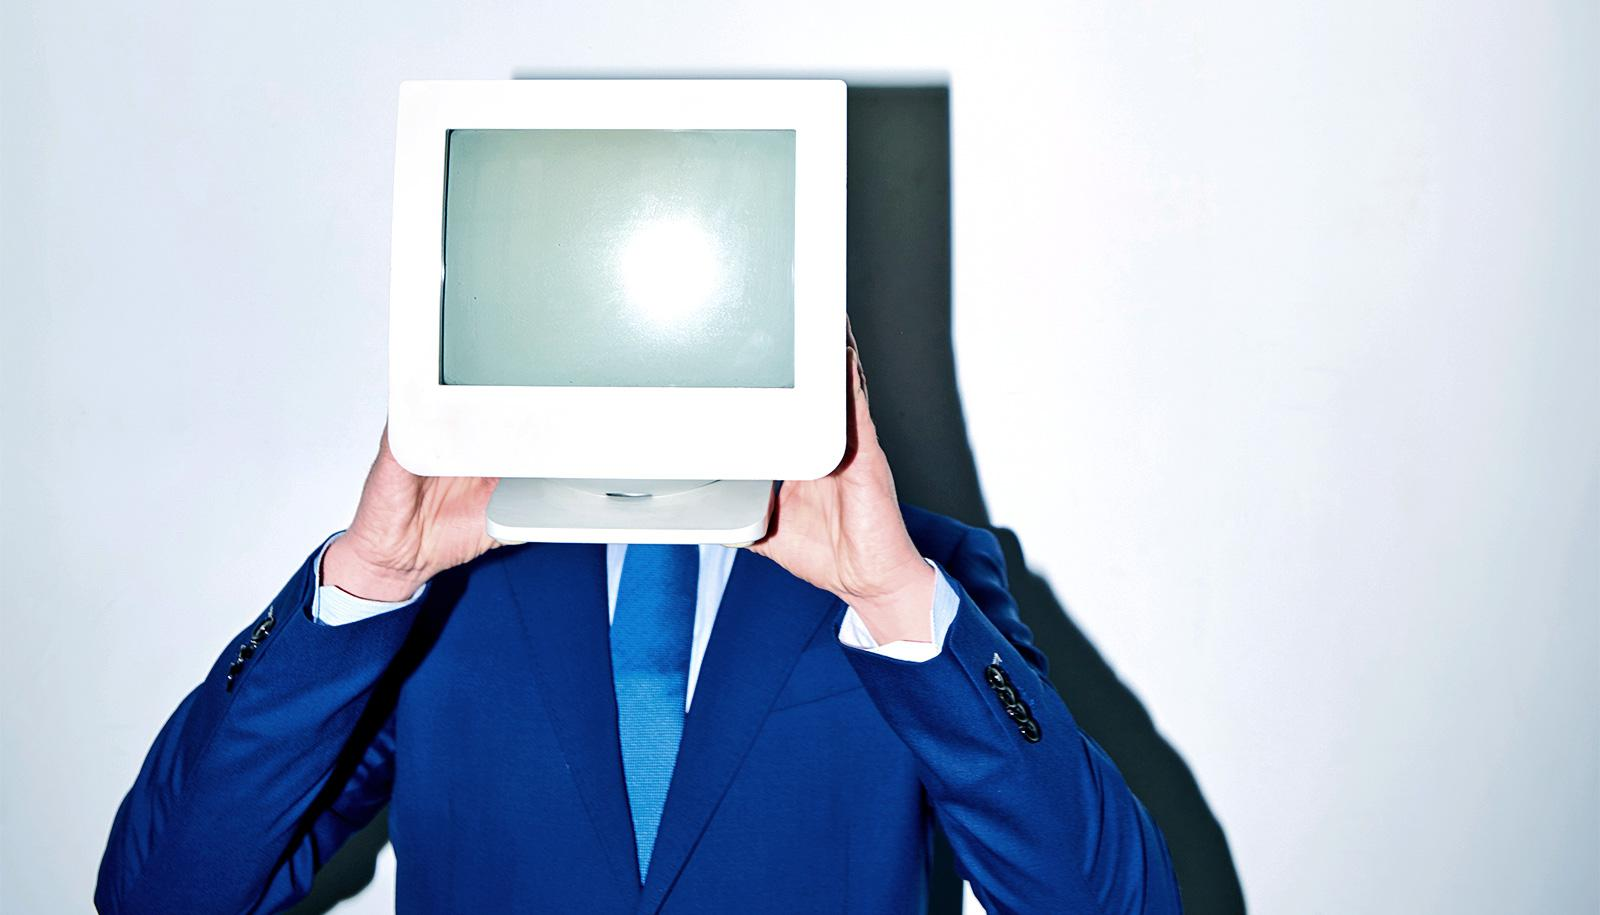 man holding monitor in front of face (artificial intelligence concept)